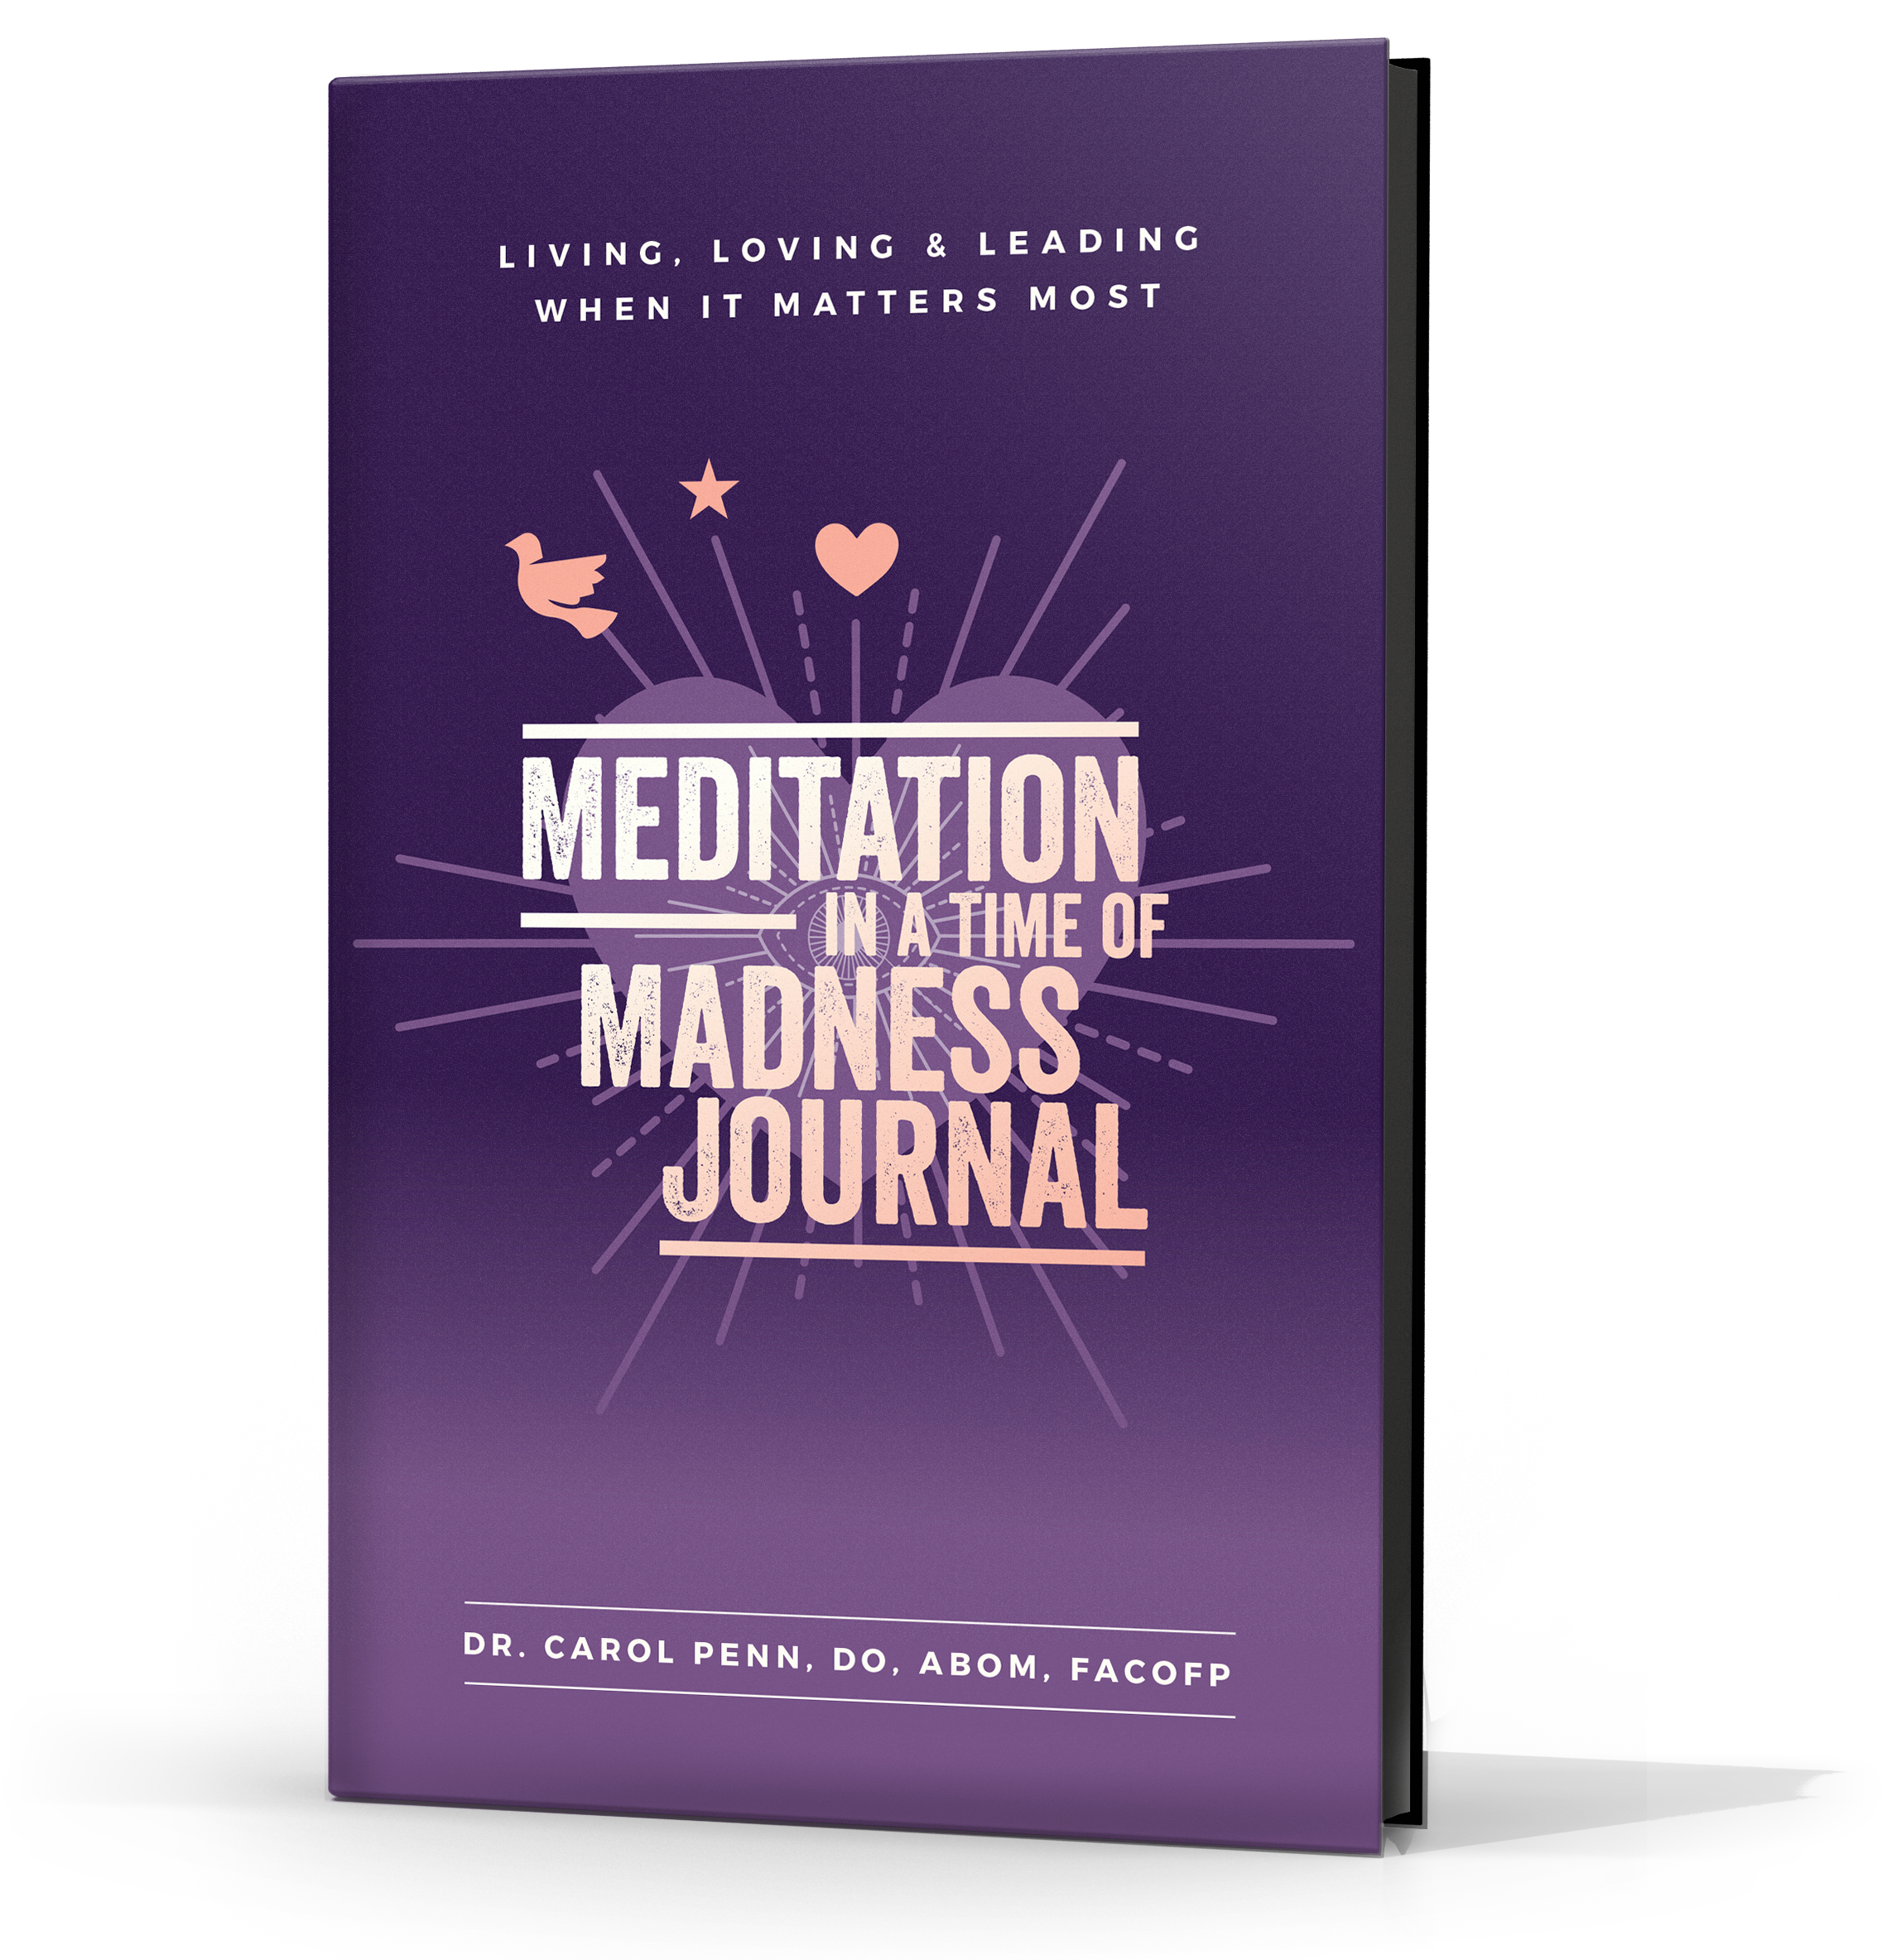 Physician and Bestselling Author Releases Book to Encourage Strength, Joy, and Finding Purpose